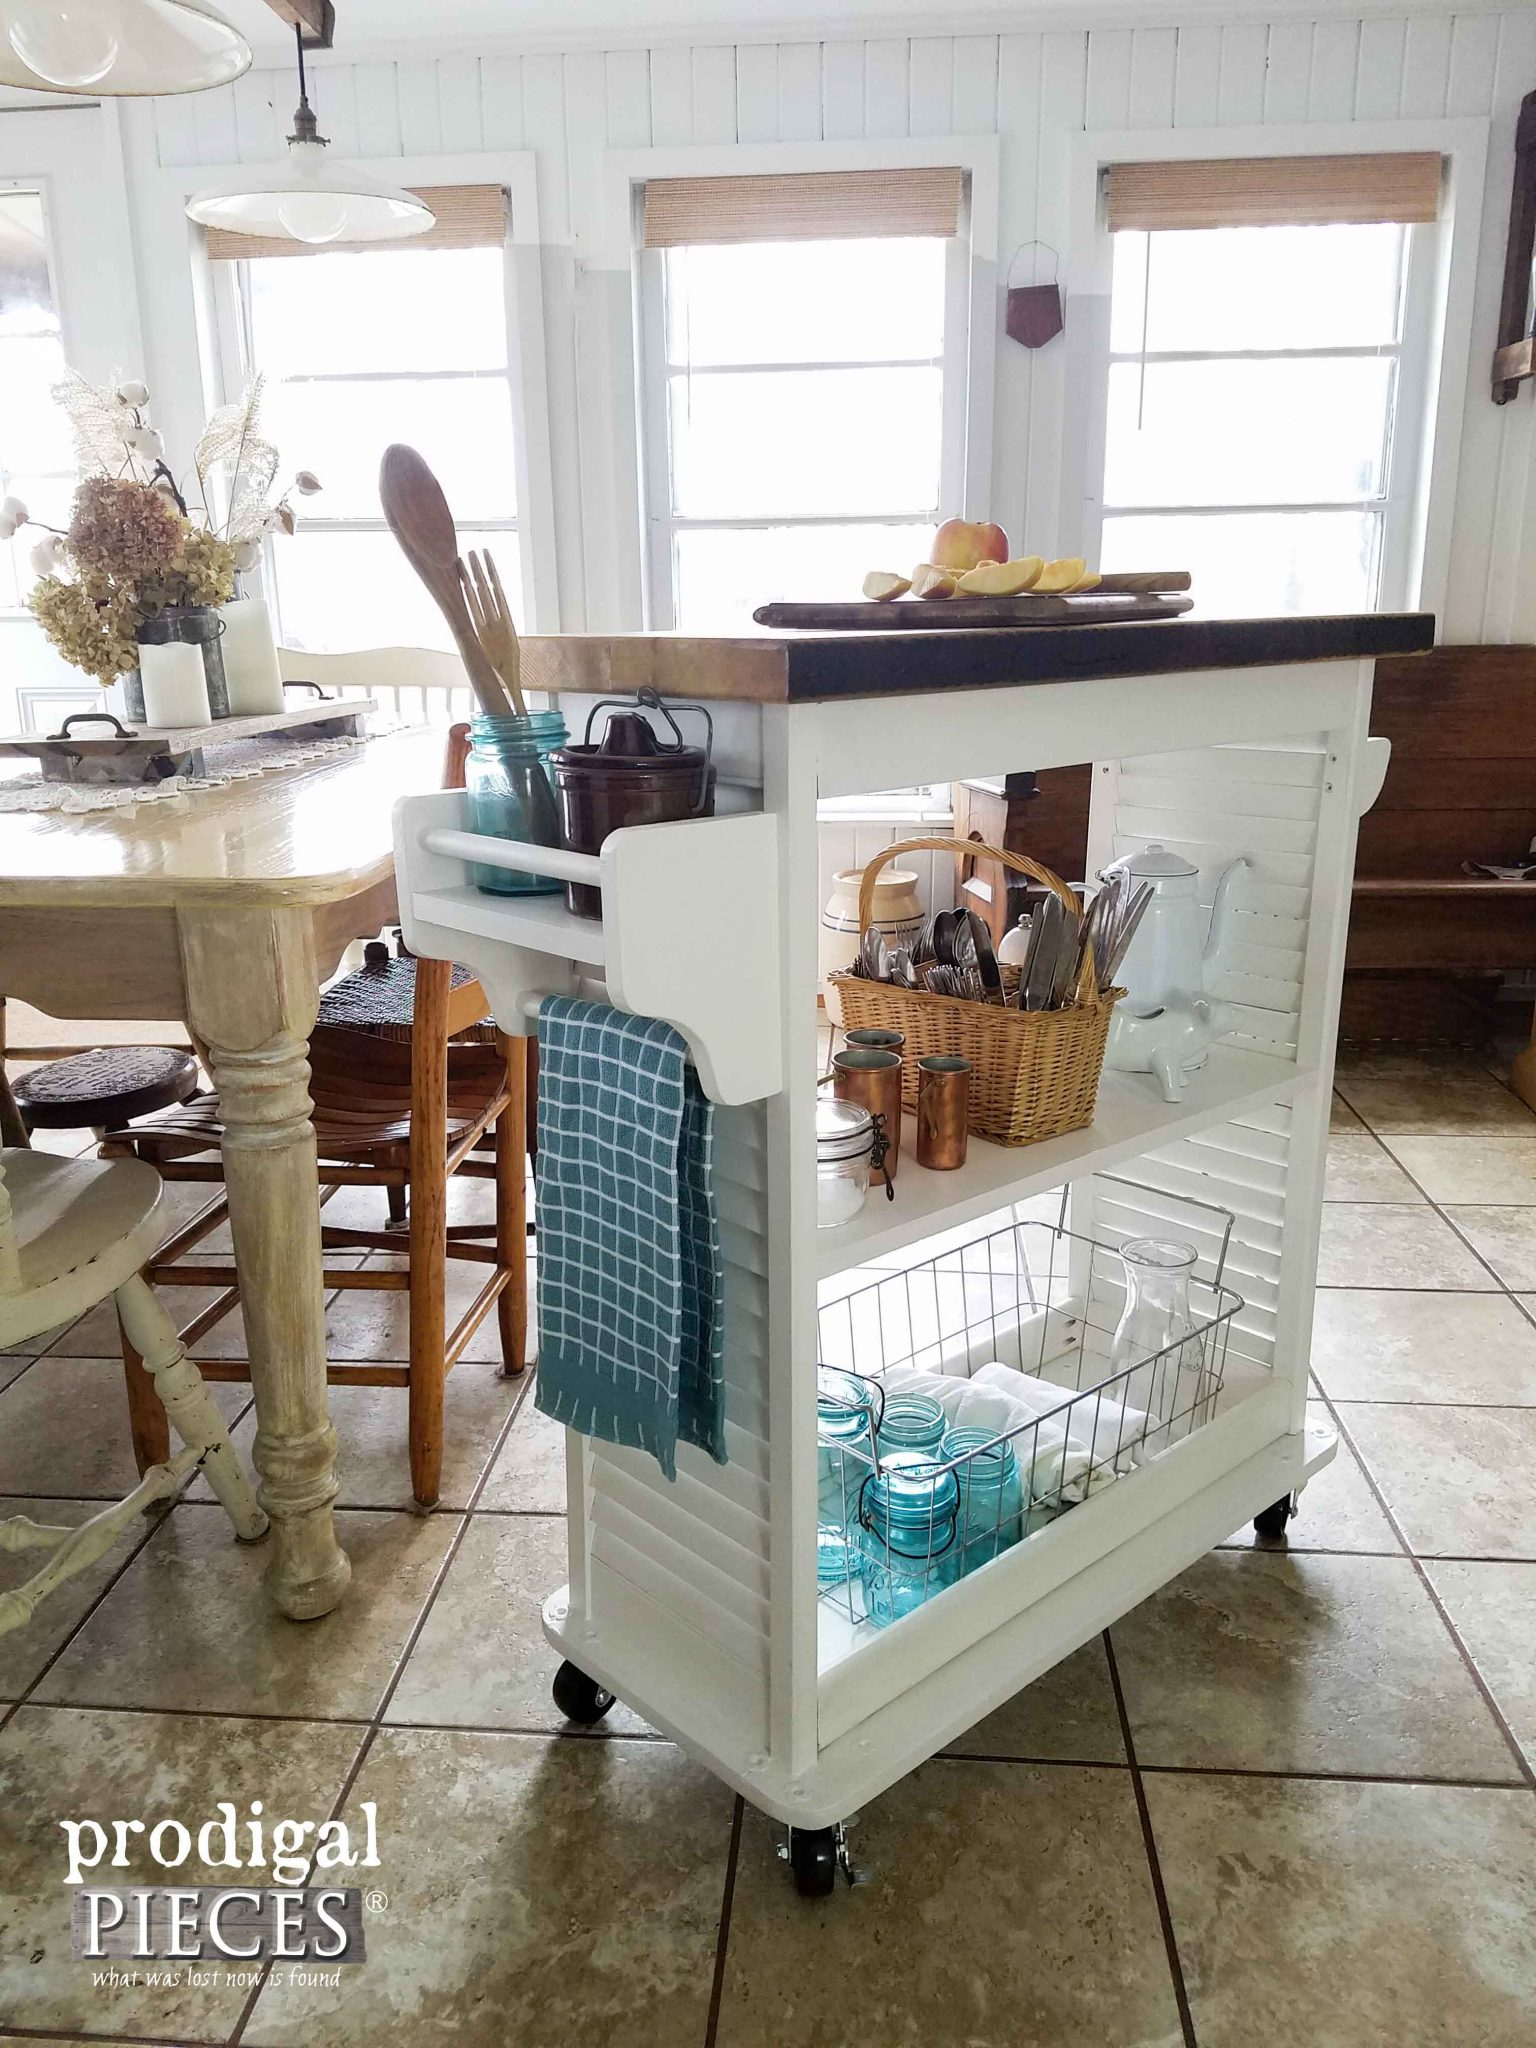 Kitchen Island Cart with Accessory Holders ~ Upcycled Fun by Prodigal Pieces | prodigalpieces.com